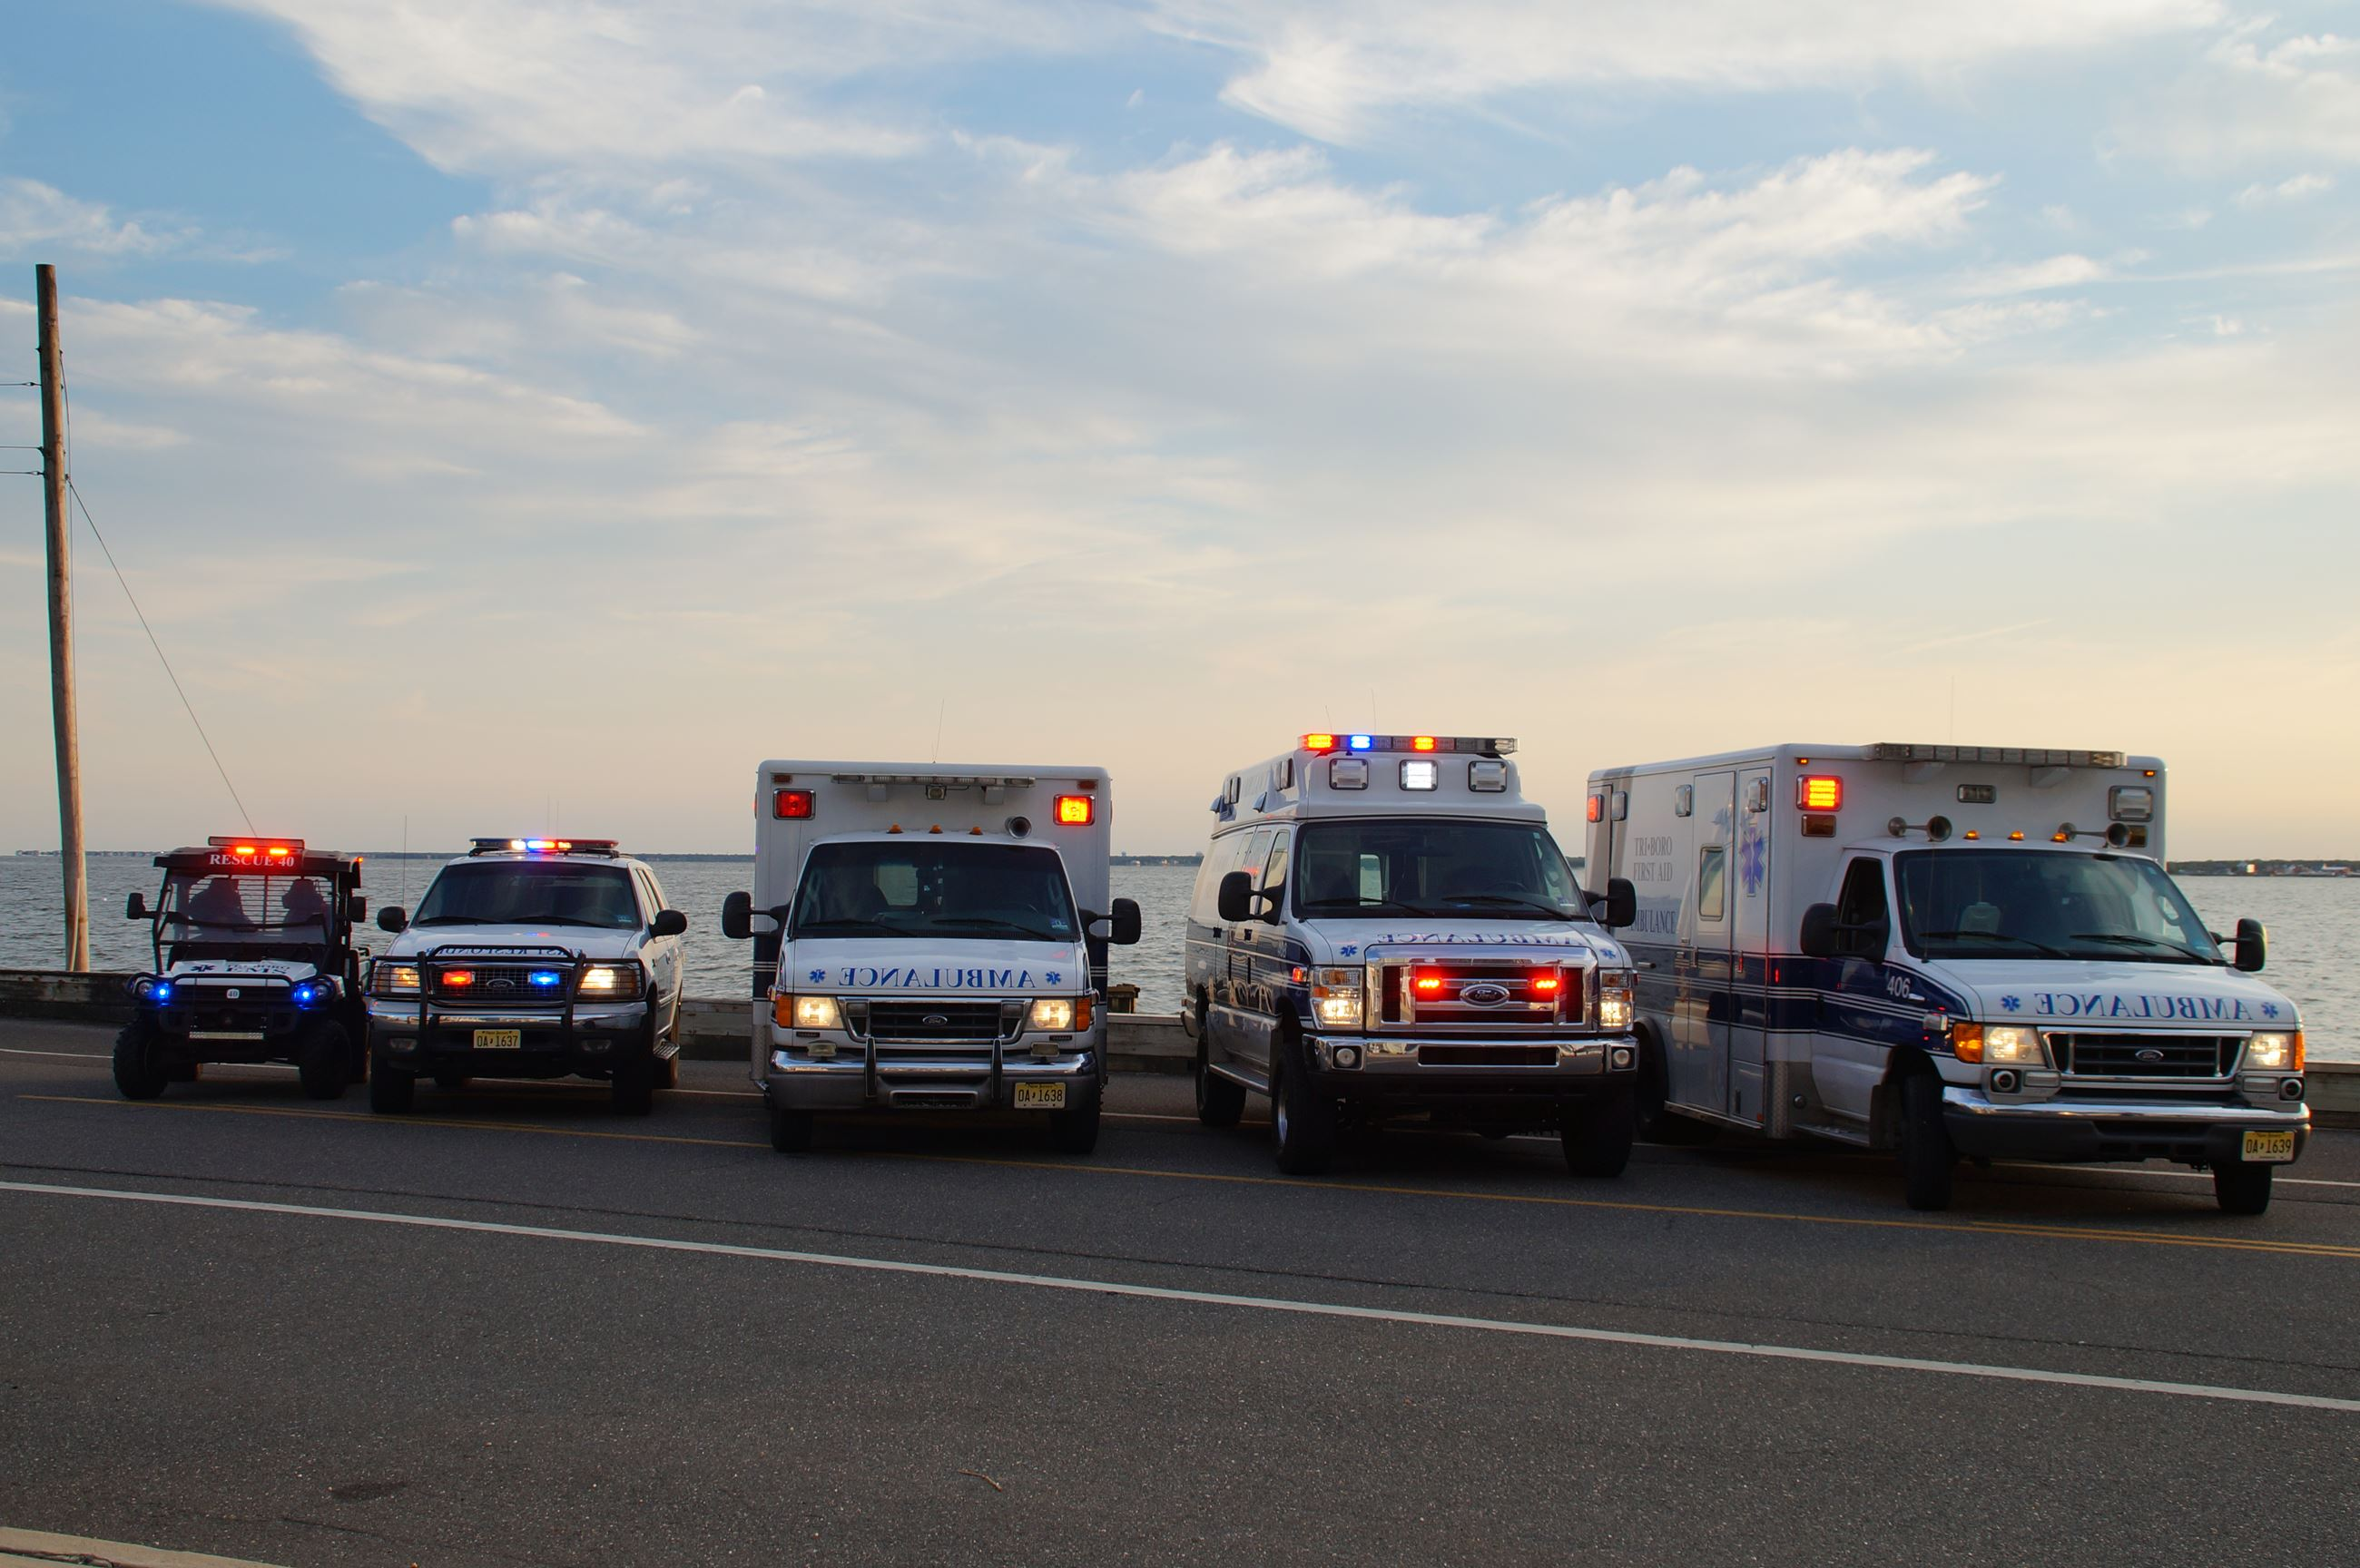 Emergency Medical Services | Seaside Heights Borough, NJ